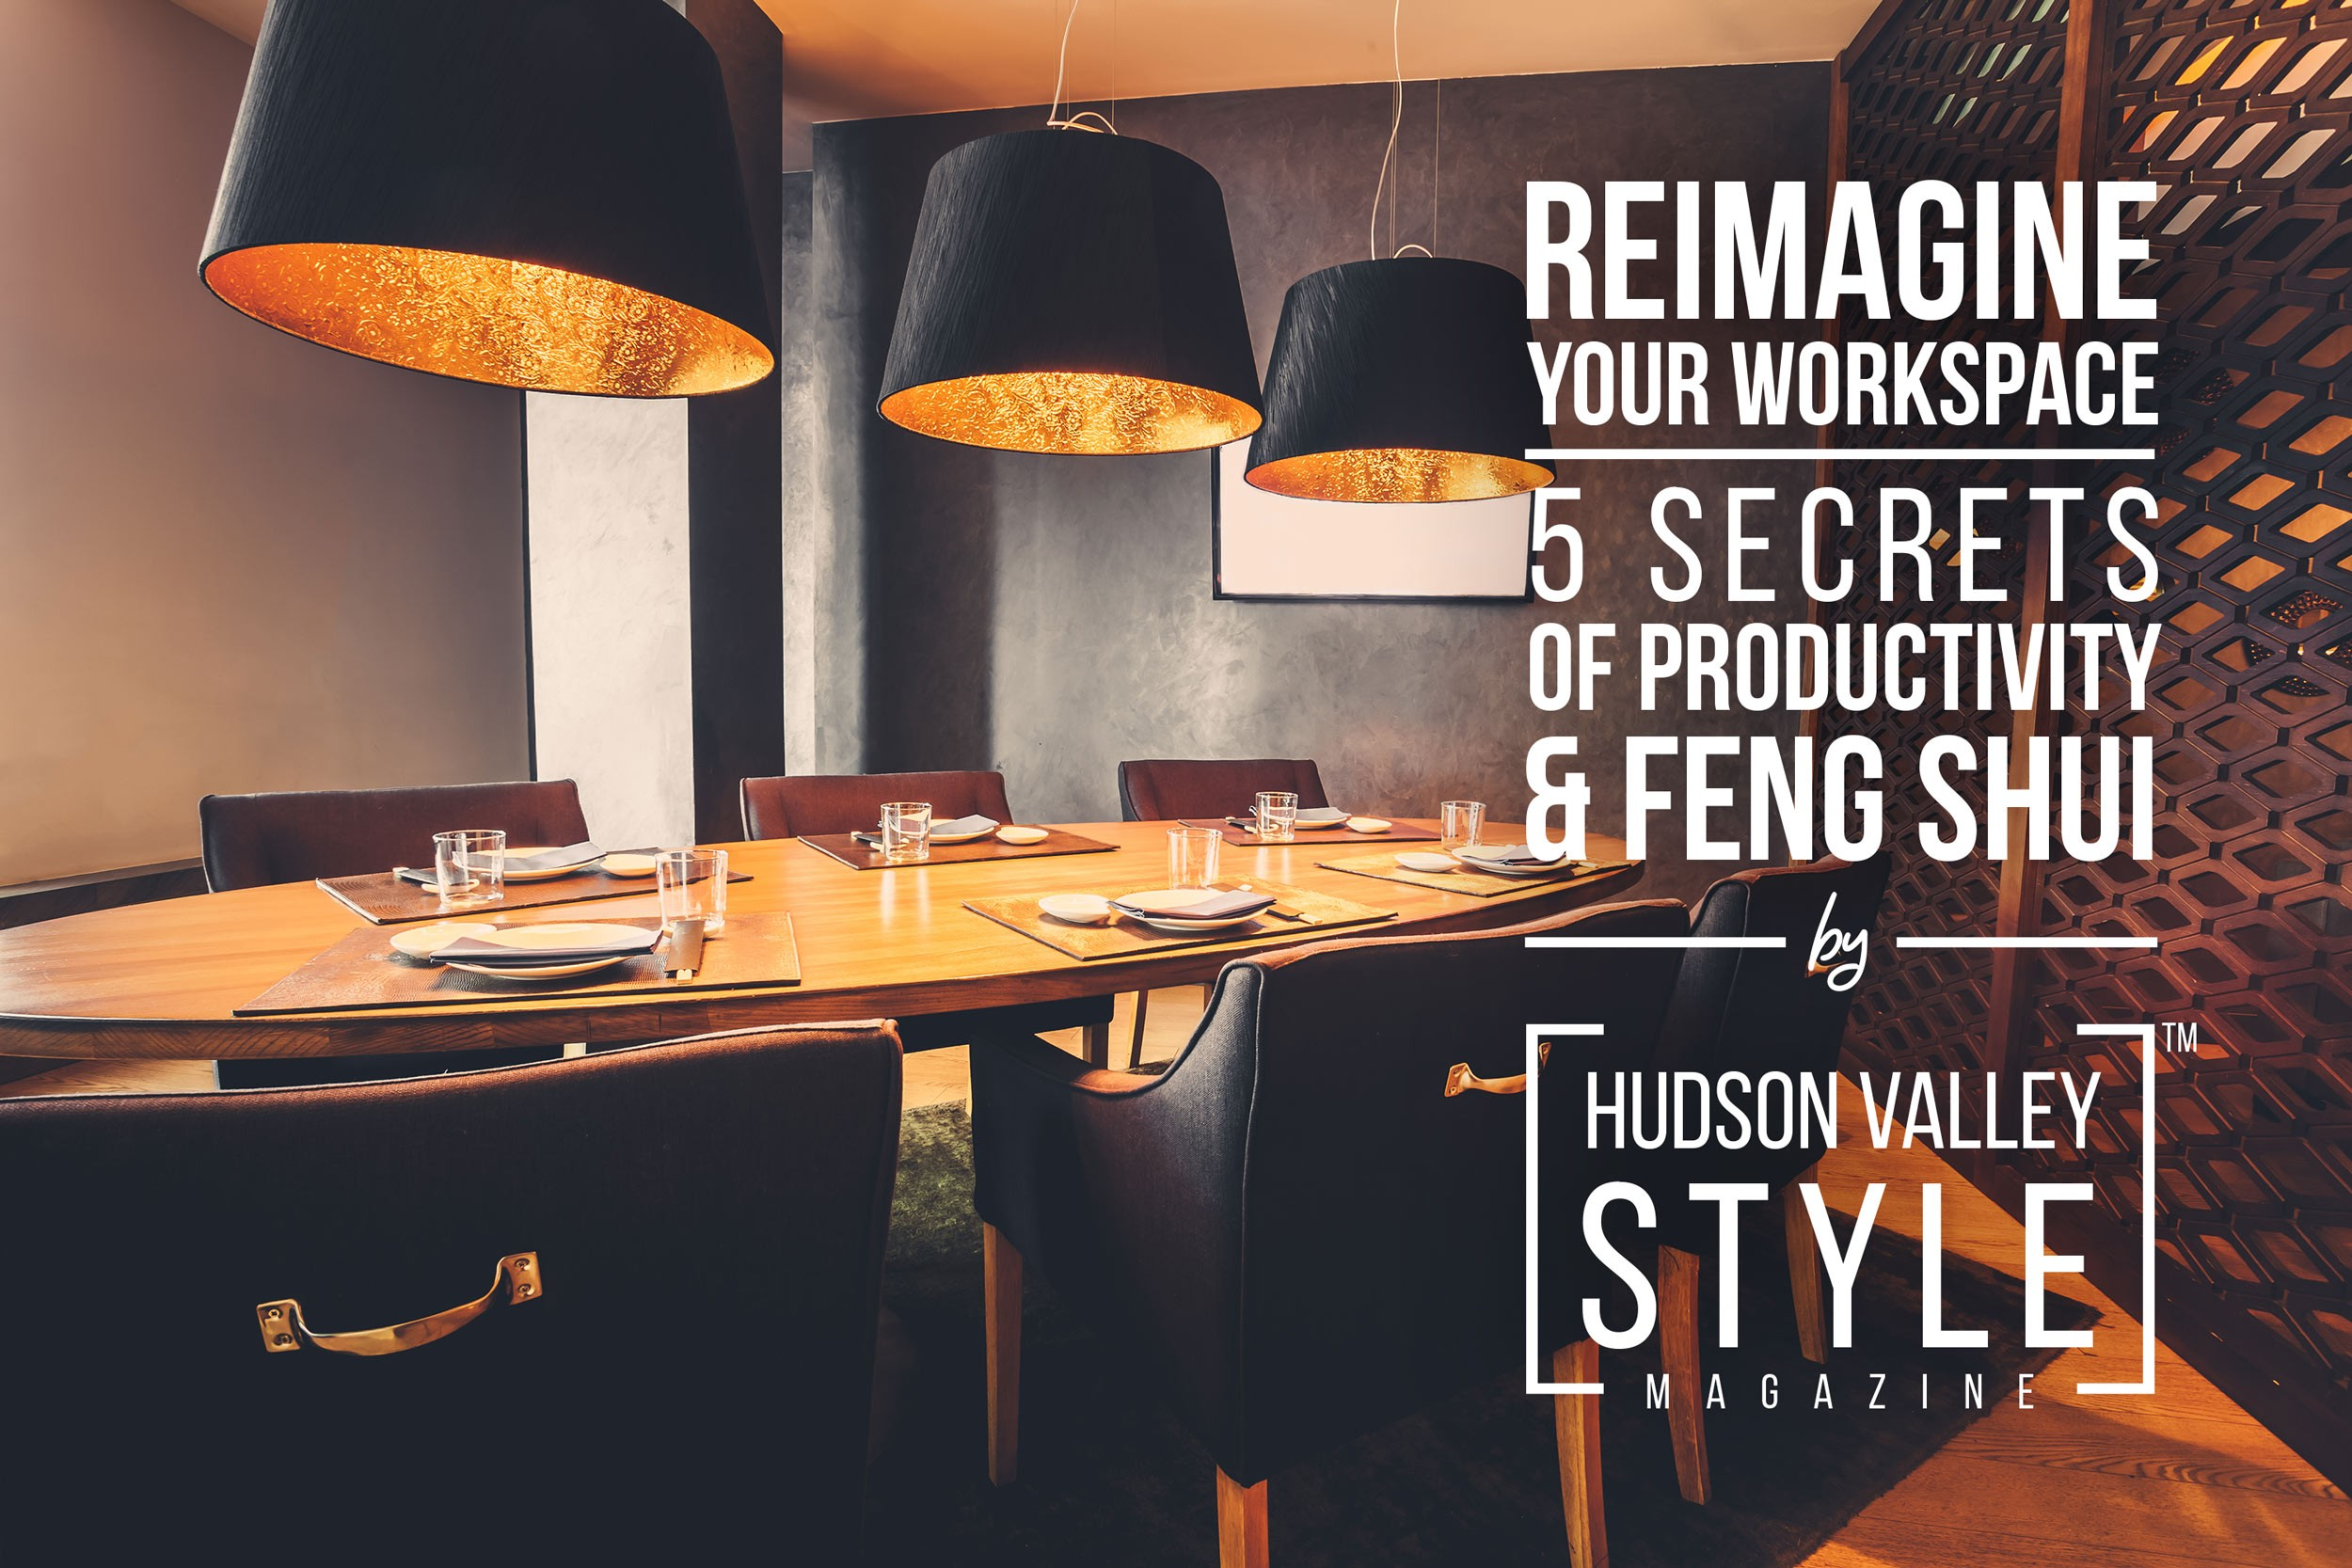 Reimagine Your Workspace - 5 Secrets of Productivity and Feng Shui by Maxwell Alexander